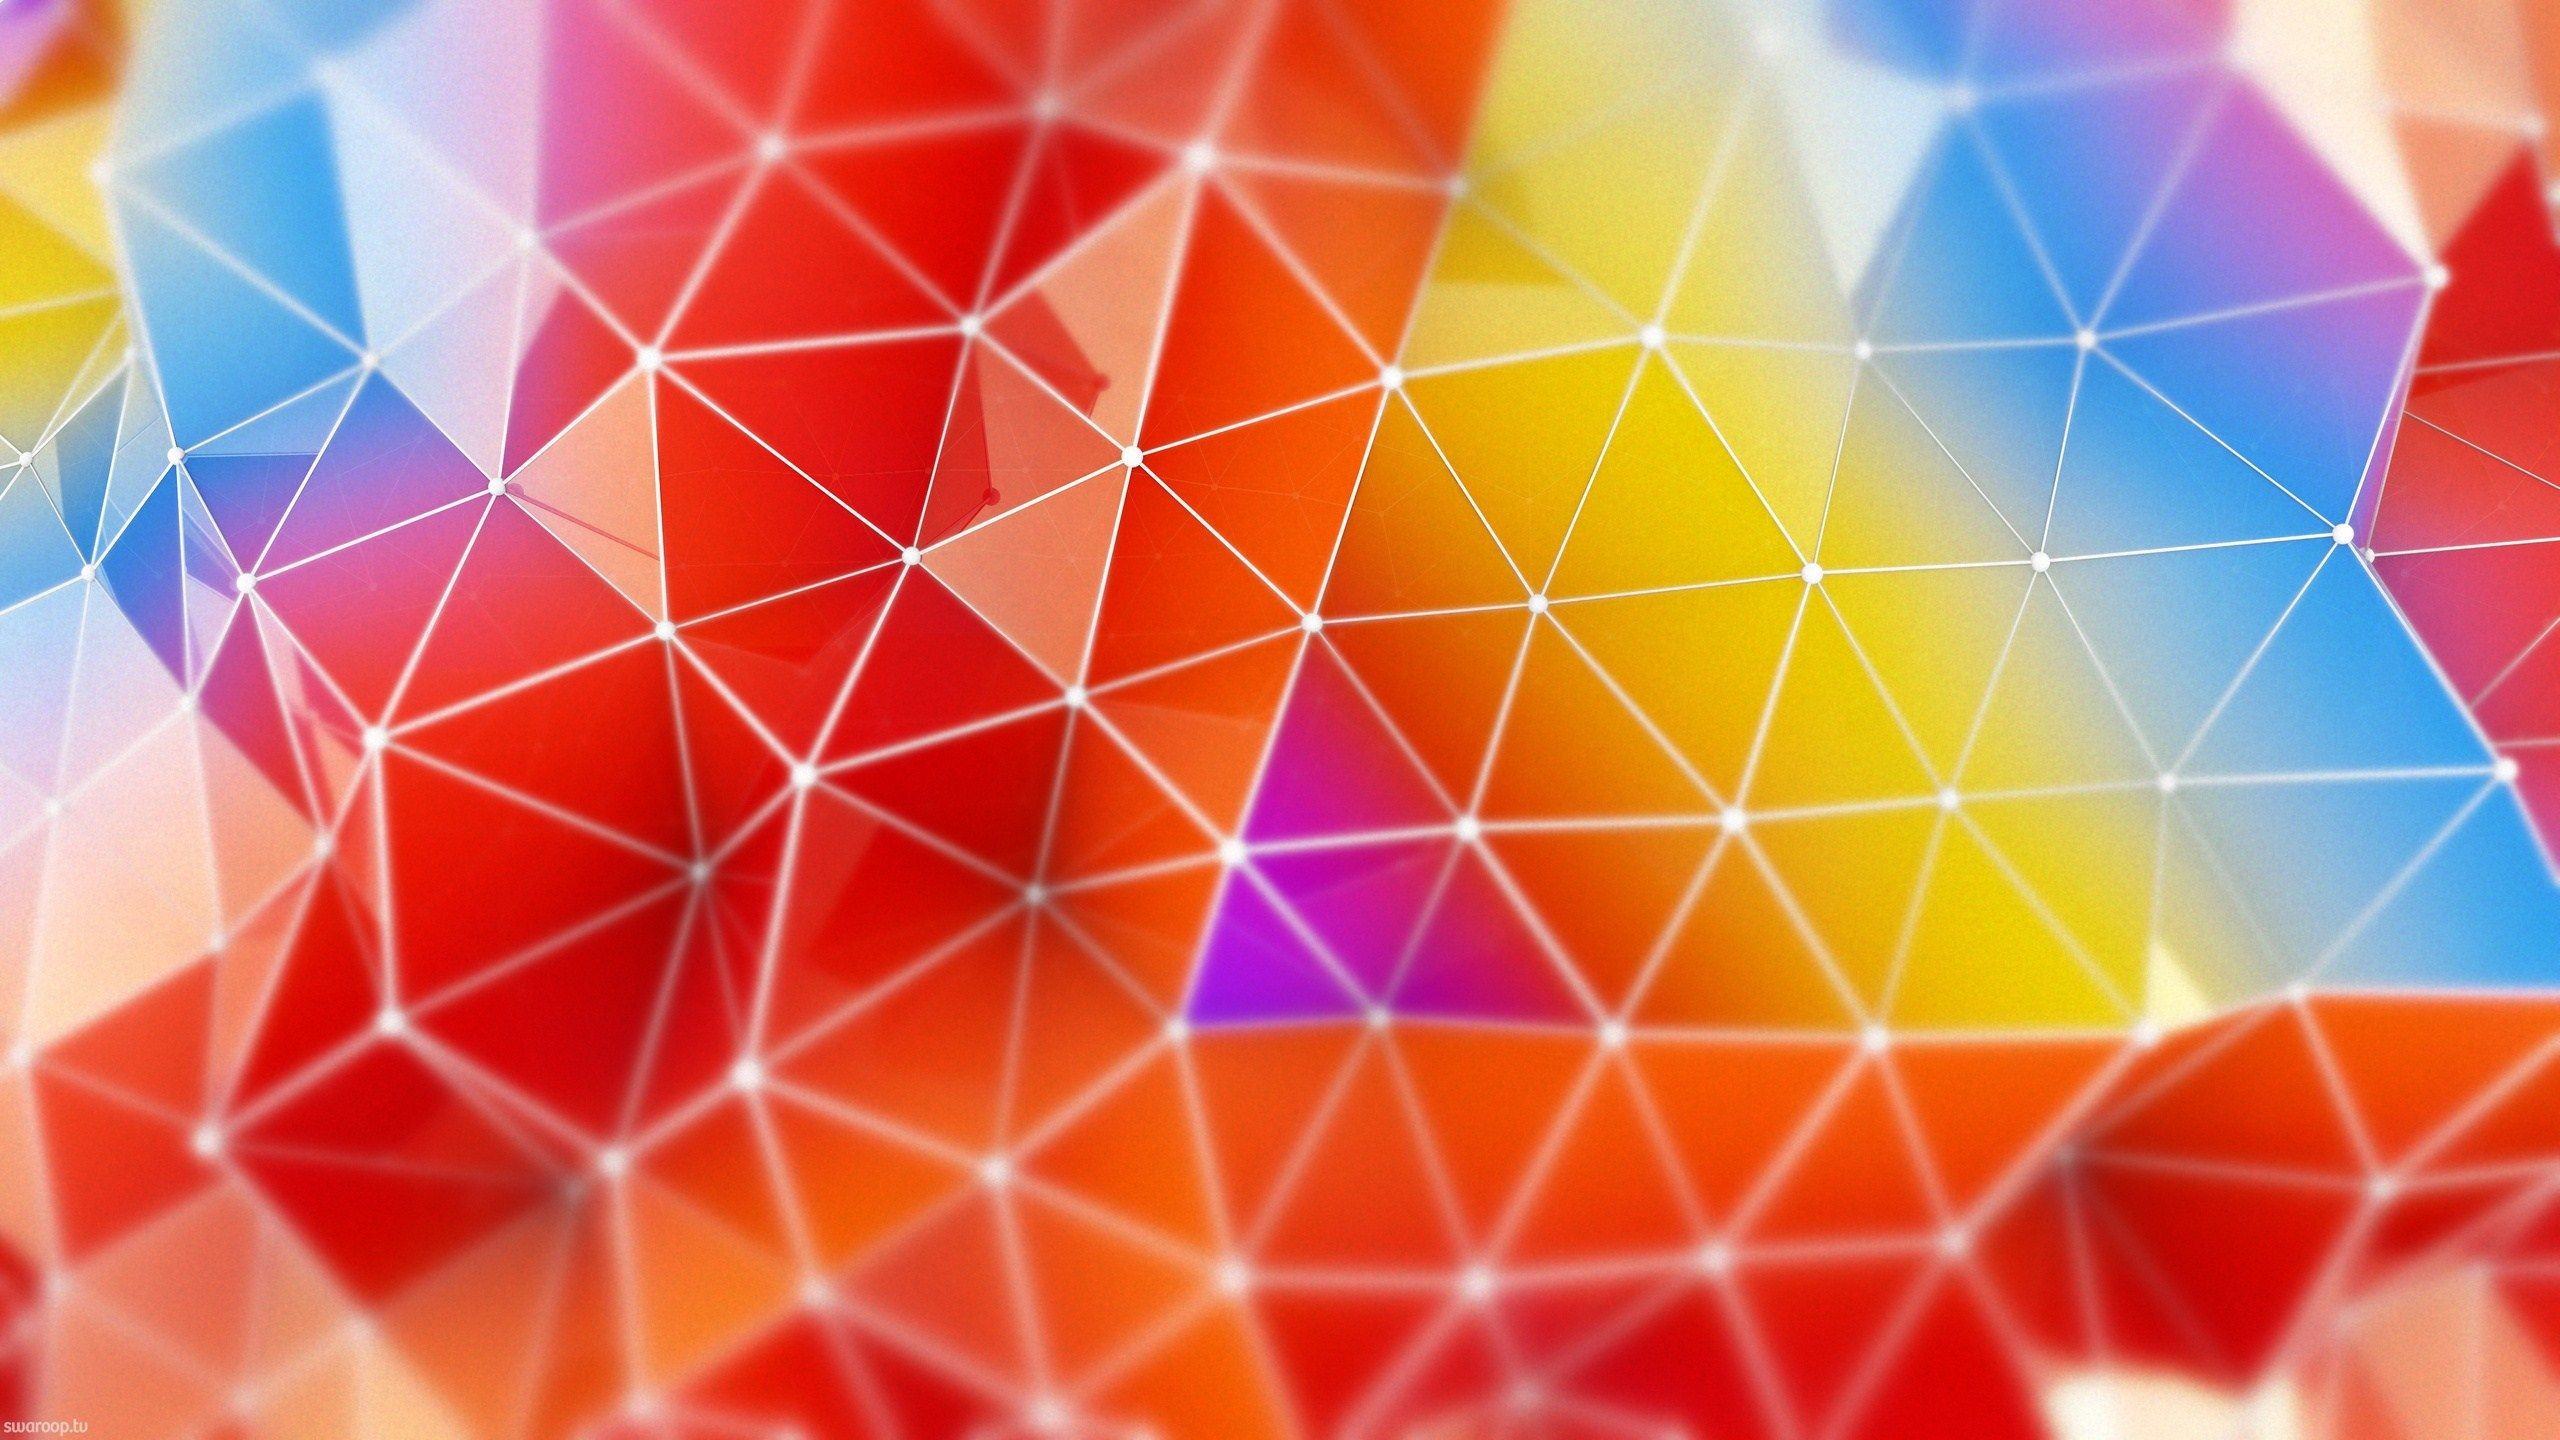 Res: 2560x1440, 3d Reflective Light Colored Triangles Wide HD Wallpaper